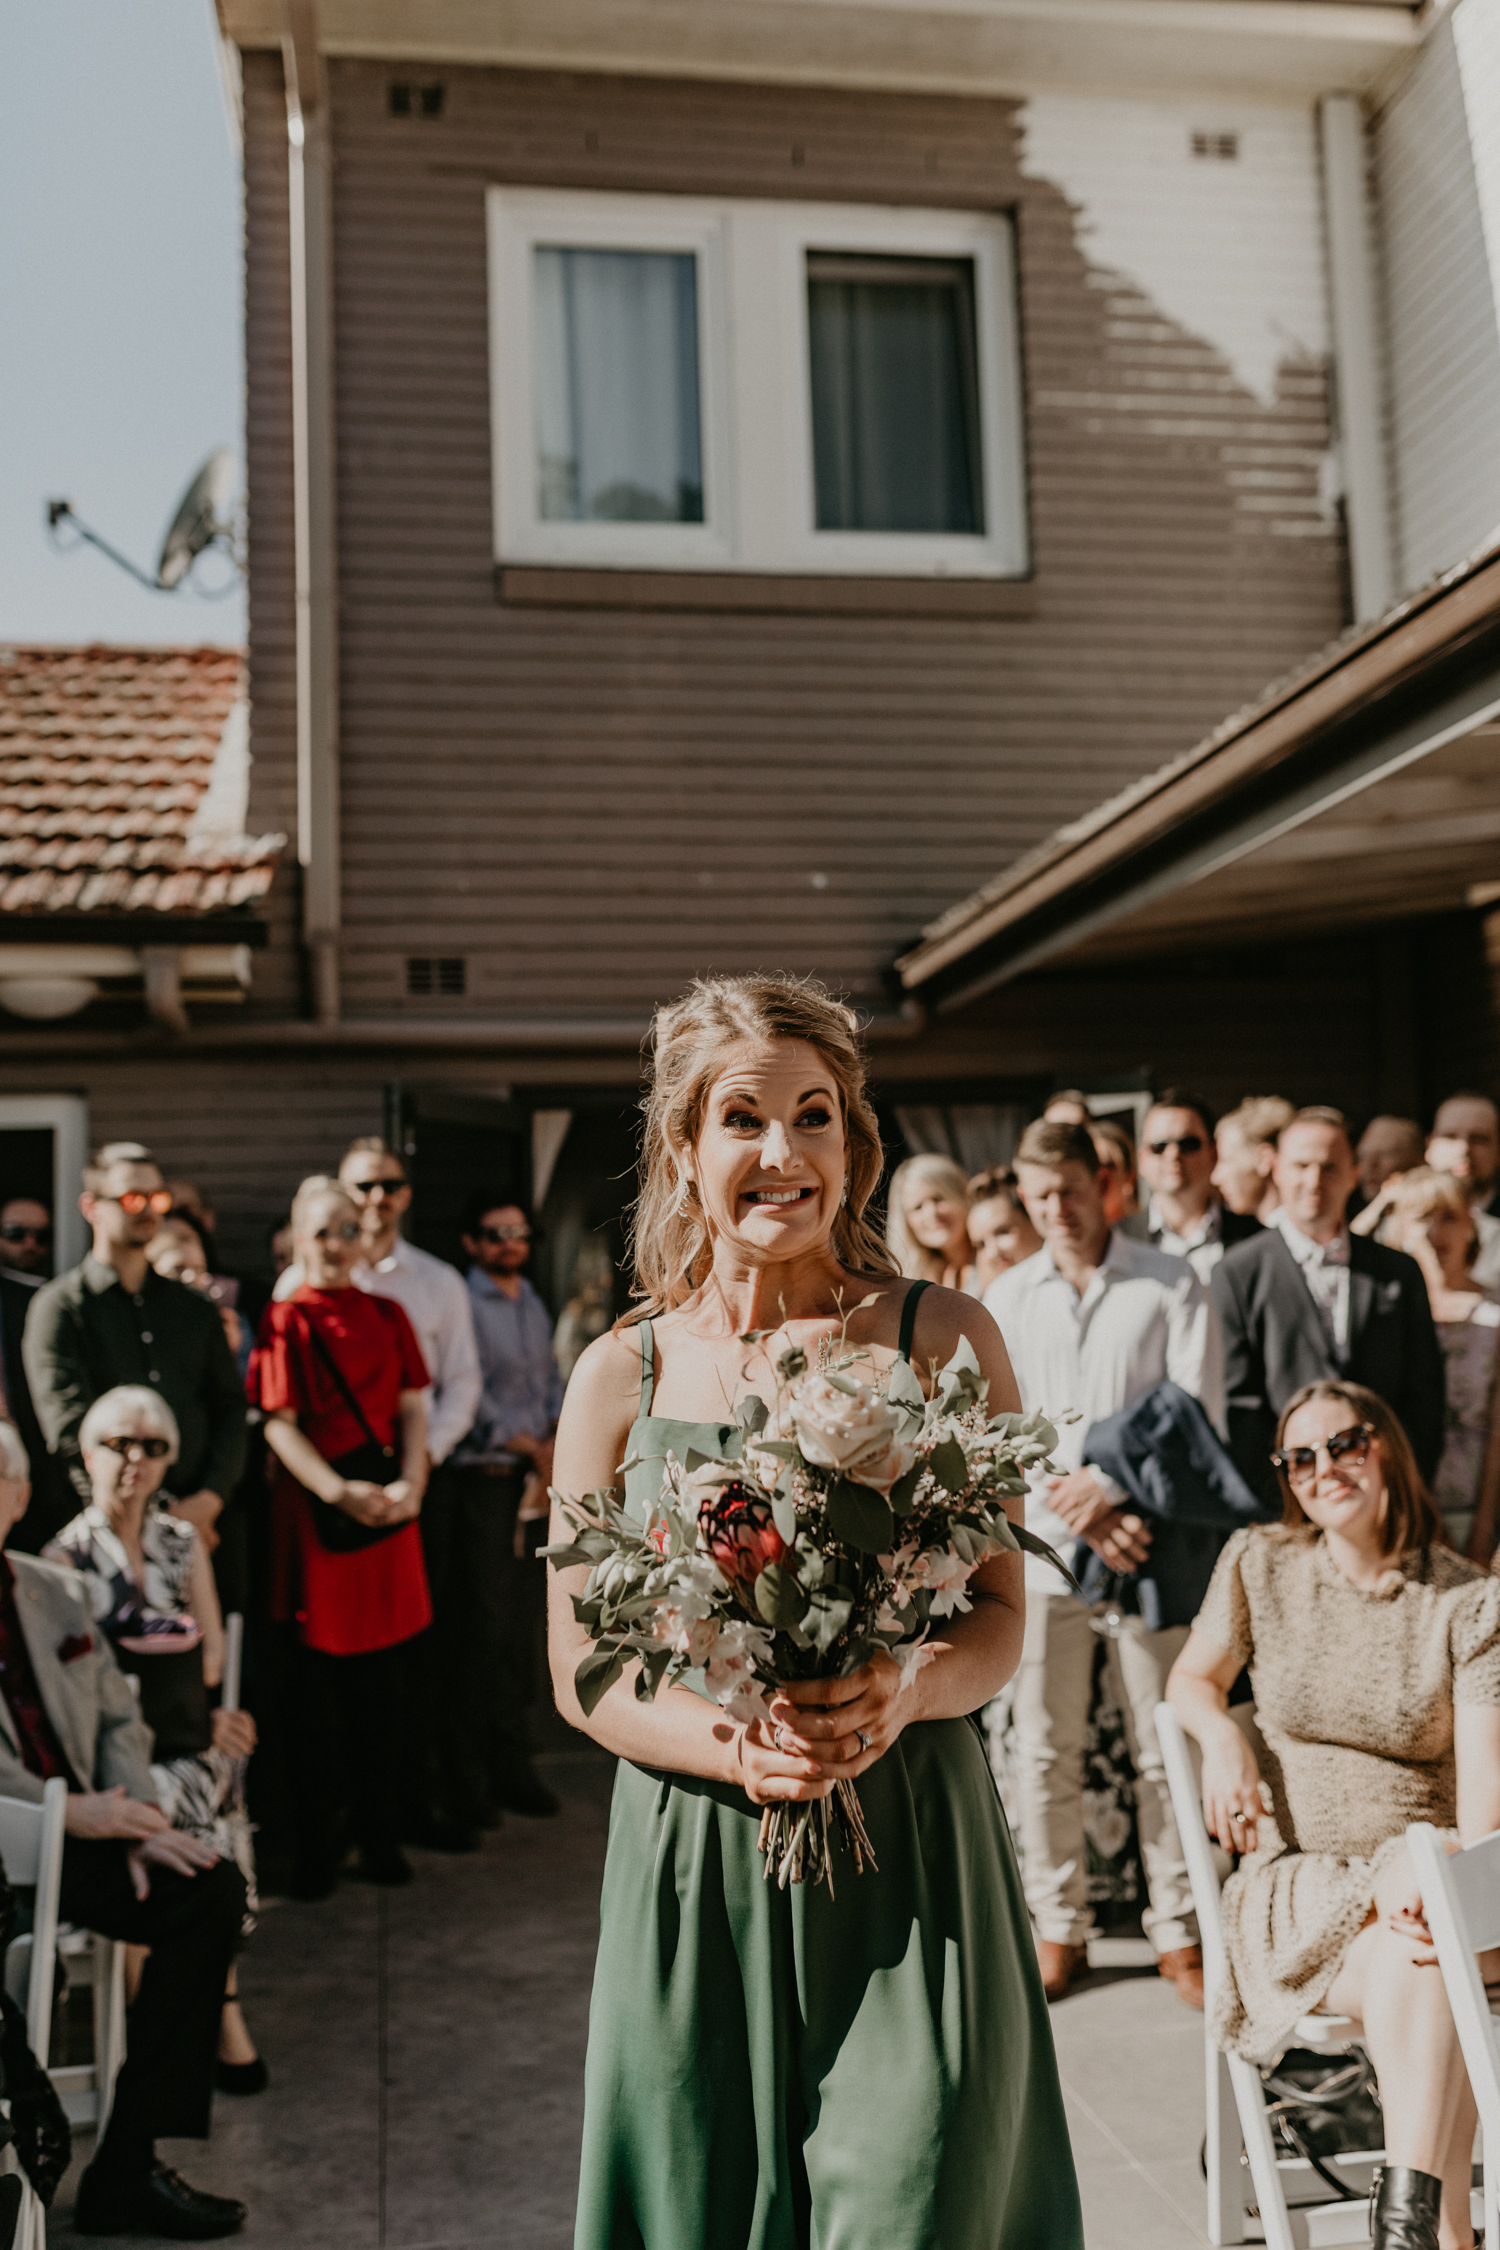 Sydney Romantic Authentic Natural Free Spirit Candid Wedding Photography-35.jpg